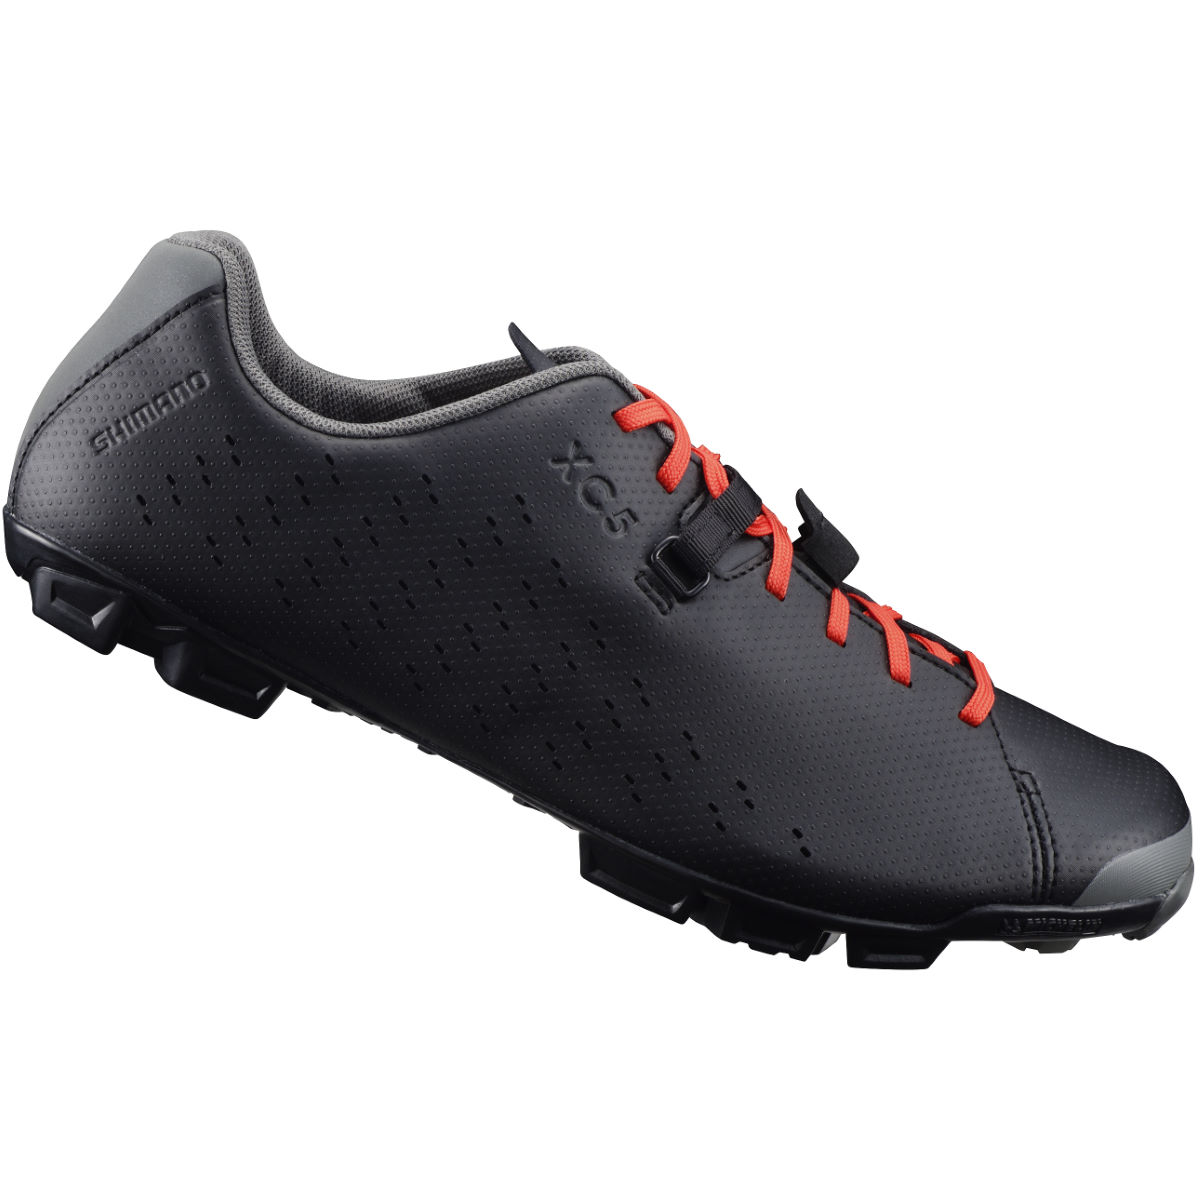 Shimano XC5 MTB SPD Shoes - 41 Black | Offroad Shoes